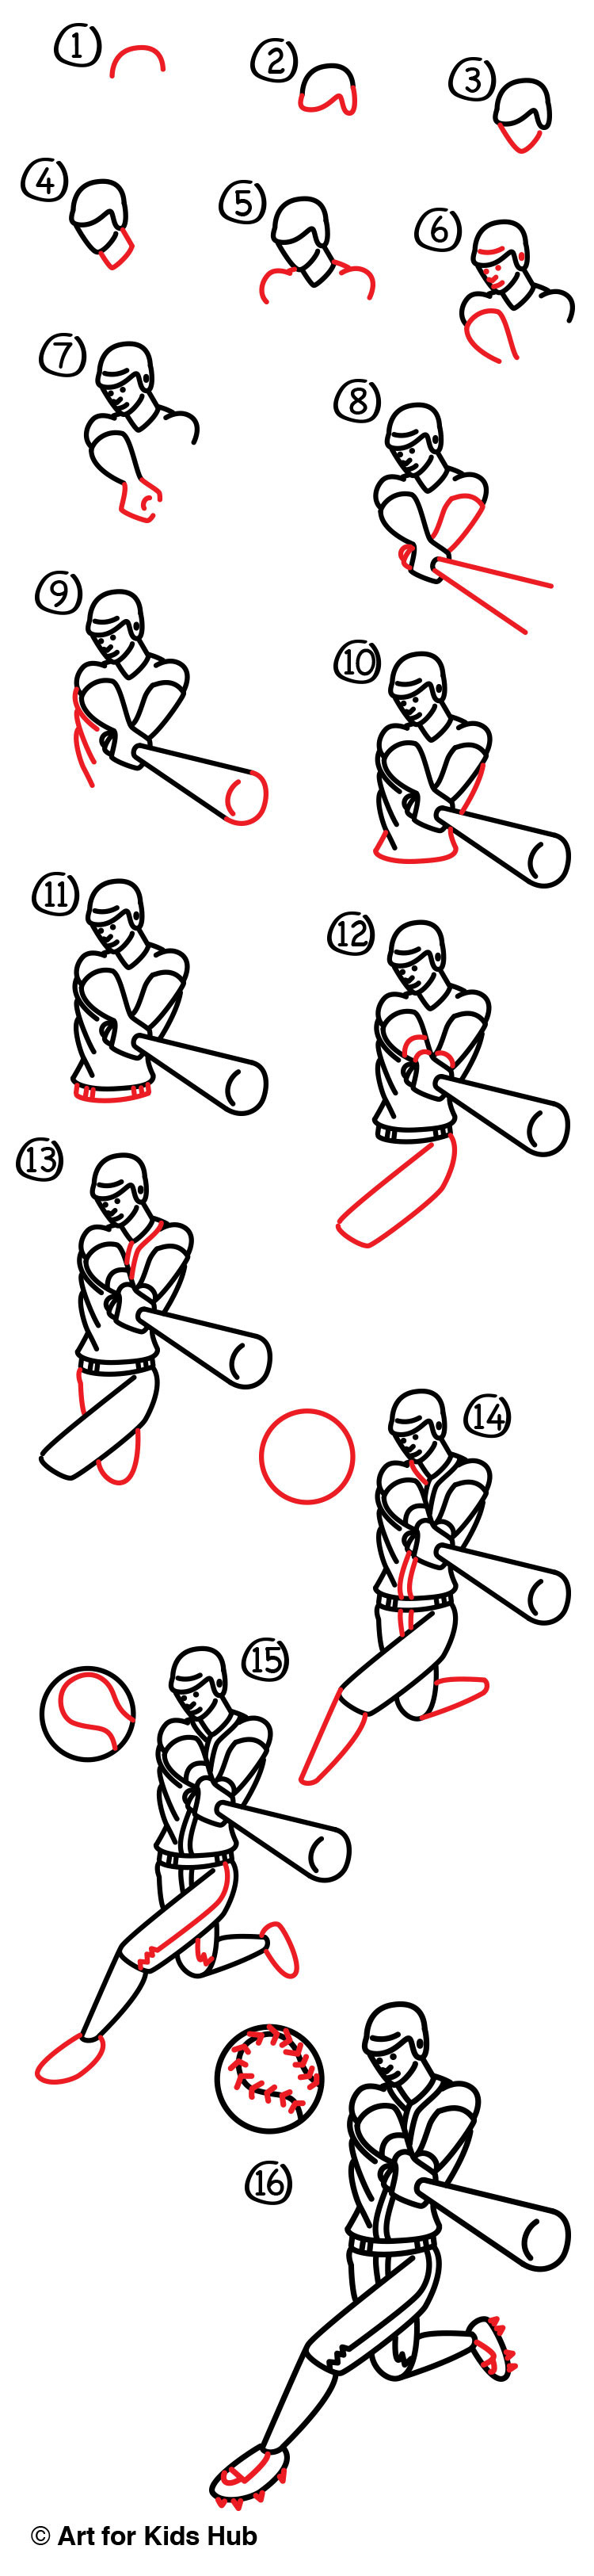 How To Draw A Baseball Player - Art for Kids Hub